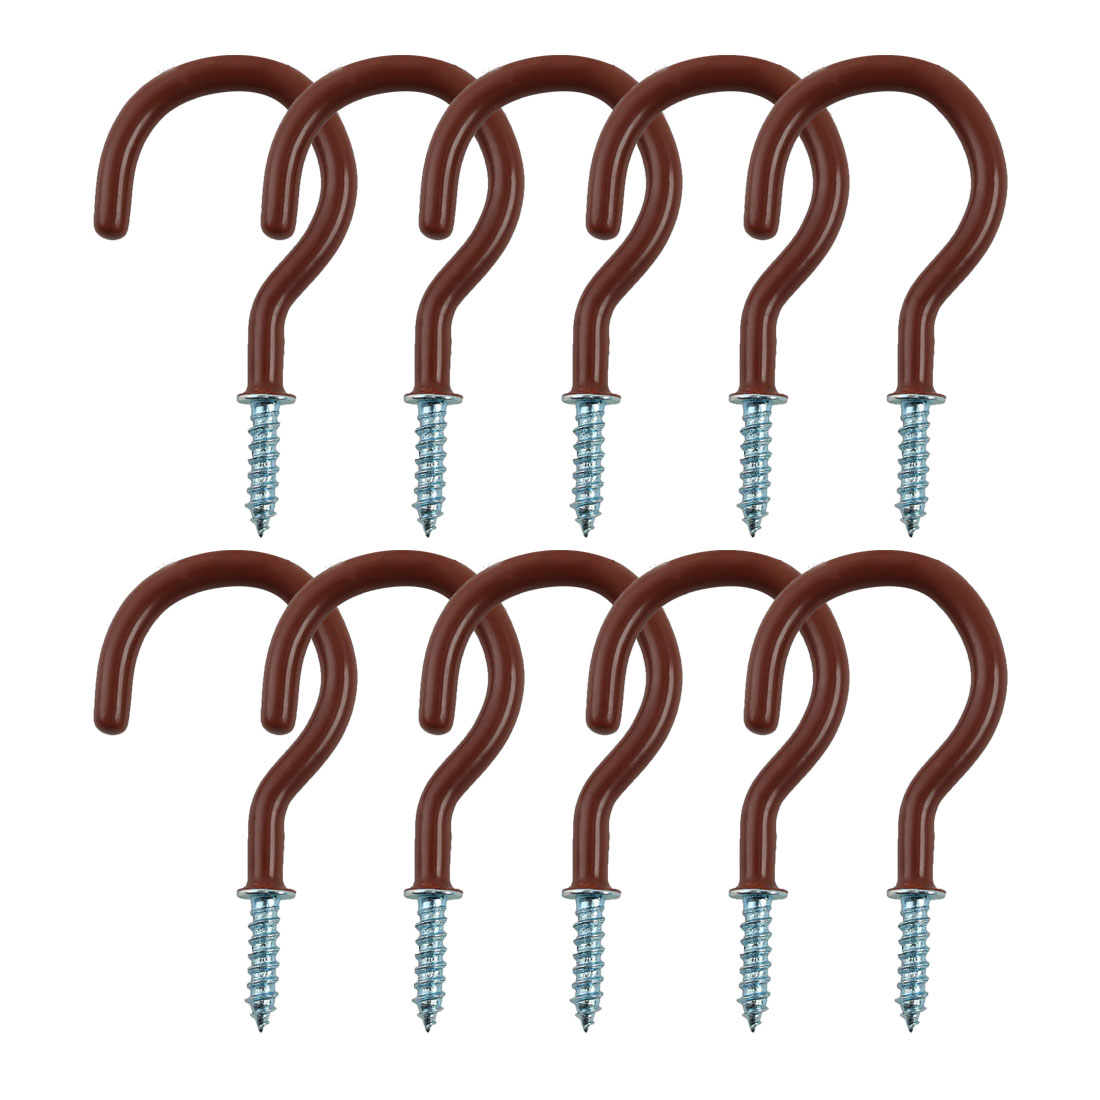 10pcs Cup Ceiling Hooks 2 Inch Metal Vinyl Coated Screw in Hanger Brown